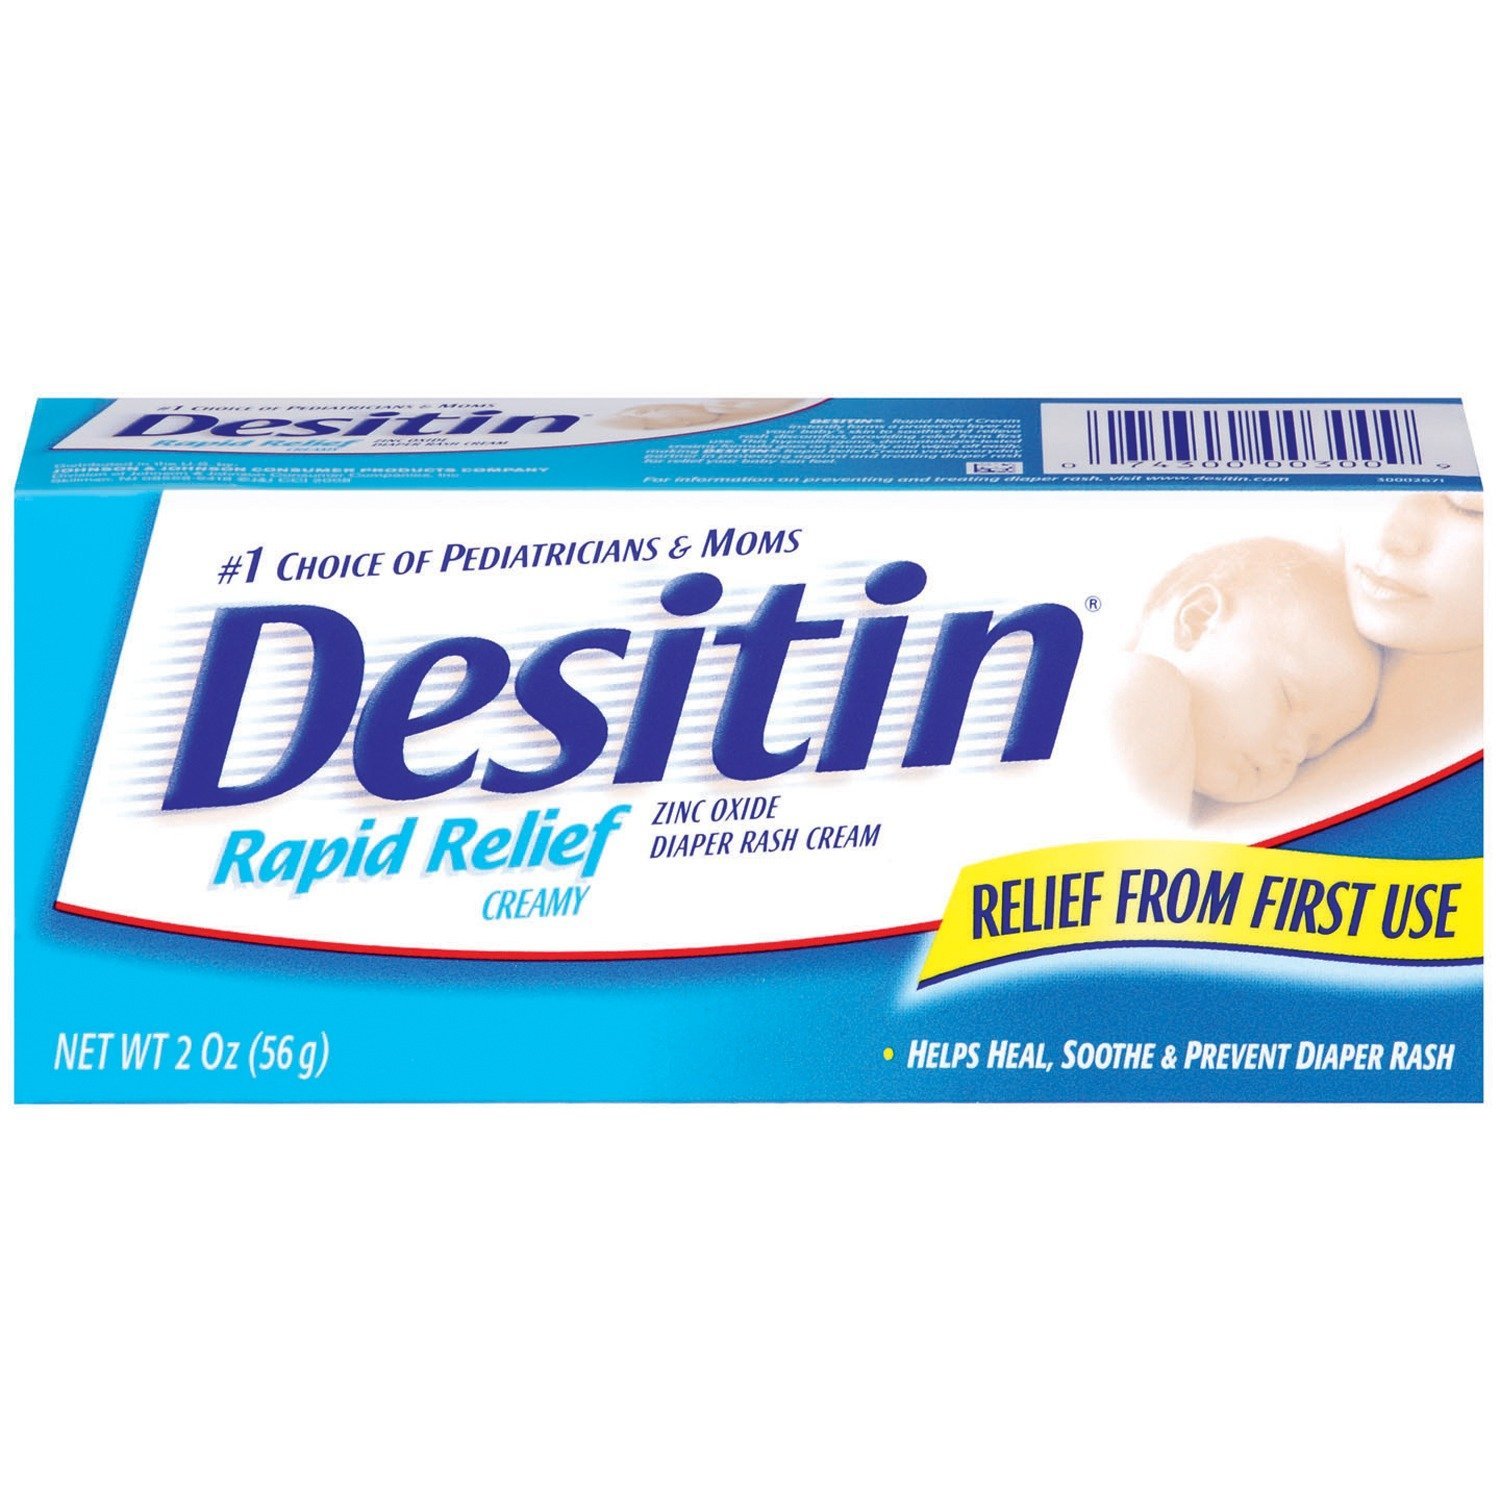 Desitin Rapid Relief Diaper Rash Remedy Cream, Travel Size, 2 Oz. Tube